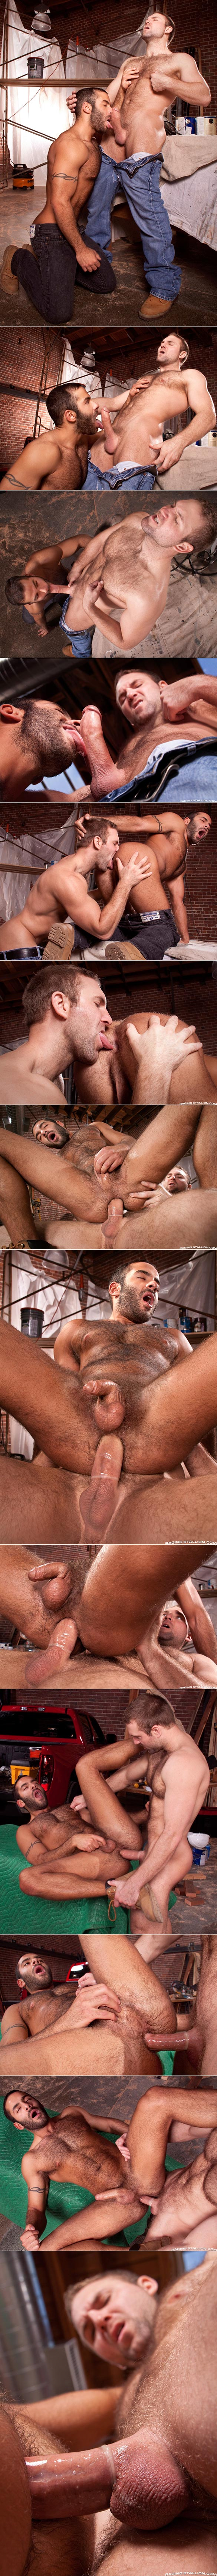 "Raging Stallion: Tom Wolfe bangs Jason Michaels in ""Built Tough"""